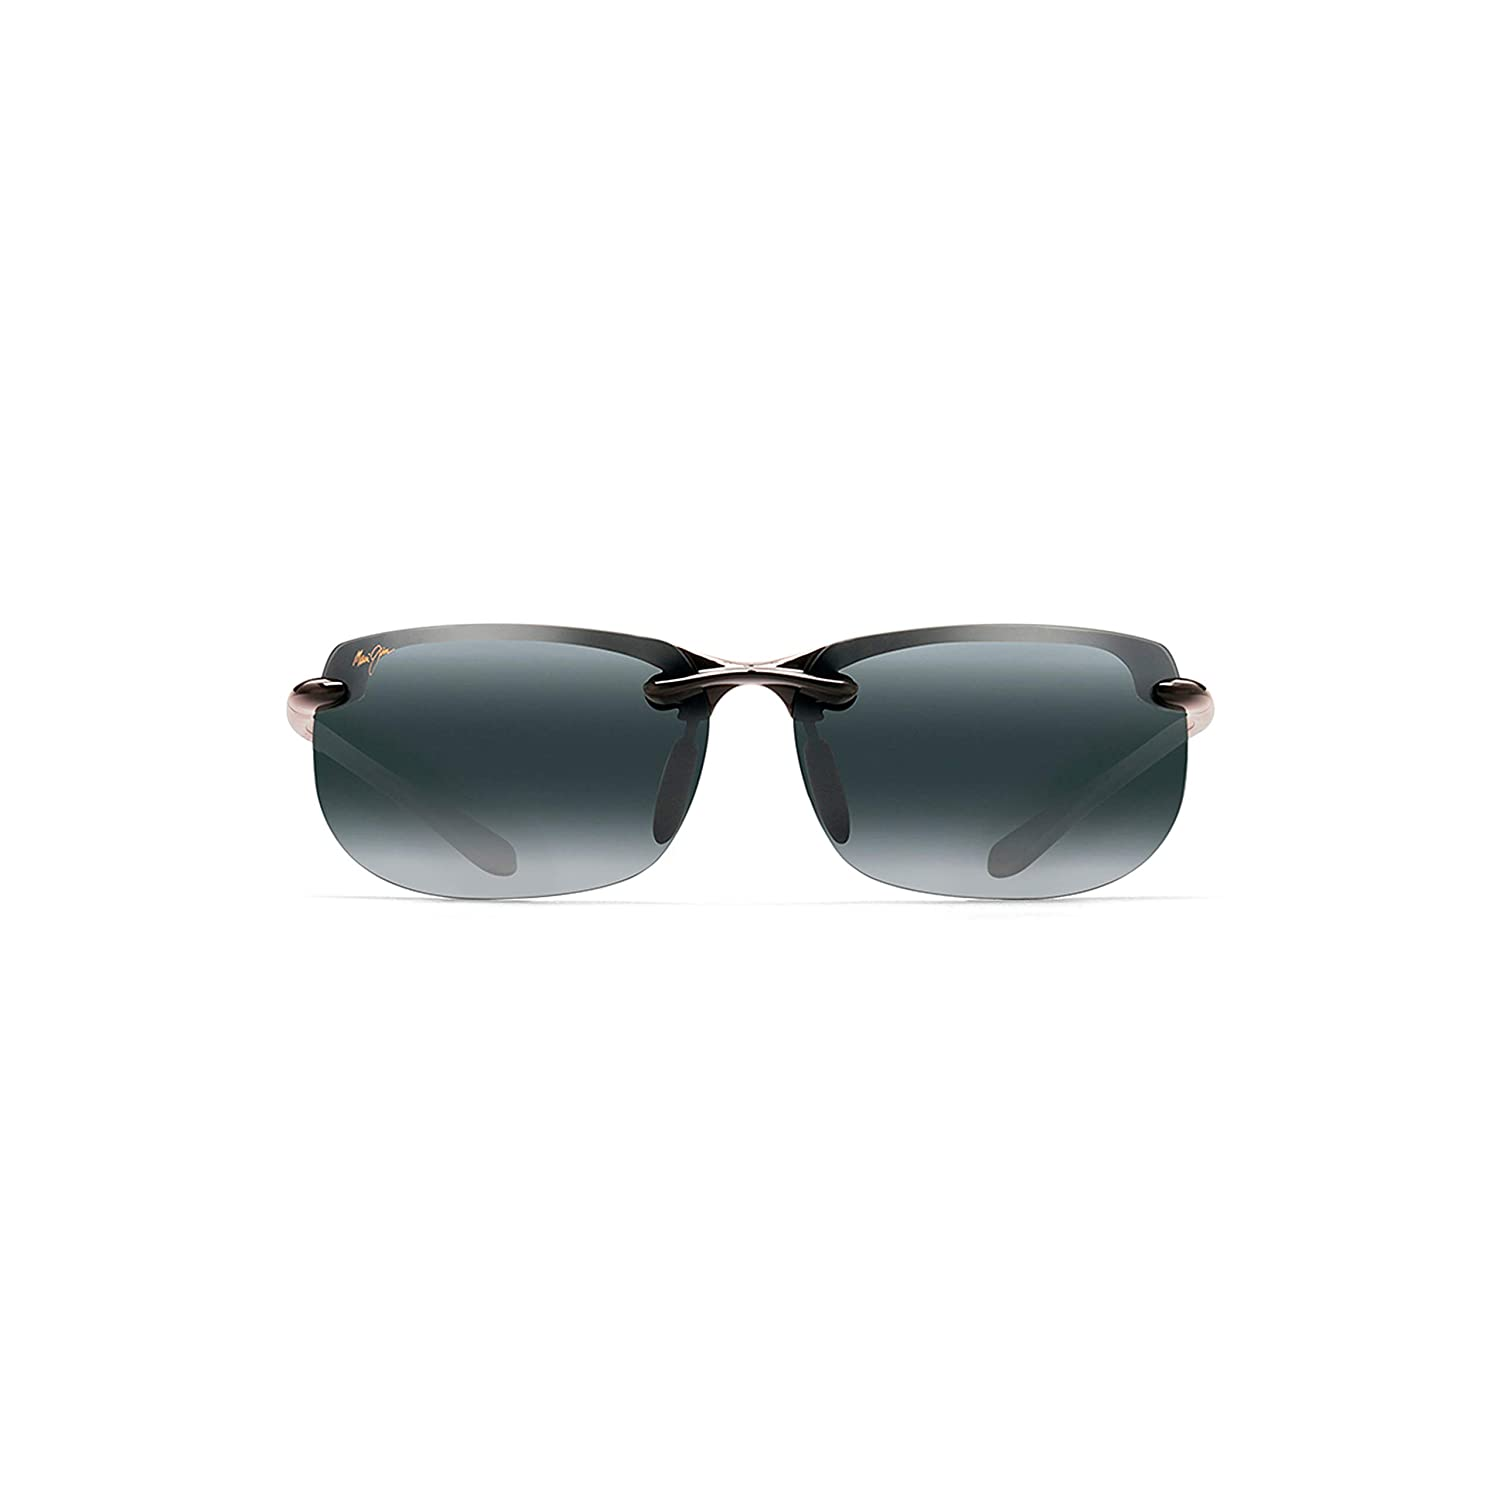 Maui Jim Sunglasses | Banyans (Universal Fit) 412N | Rimless Frame, Polarized Lenses, with Patented PolarizedPlus2 Lens Technology